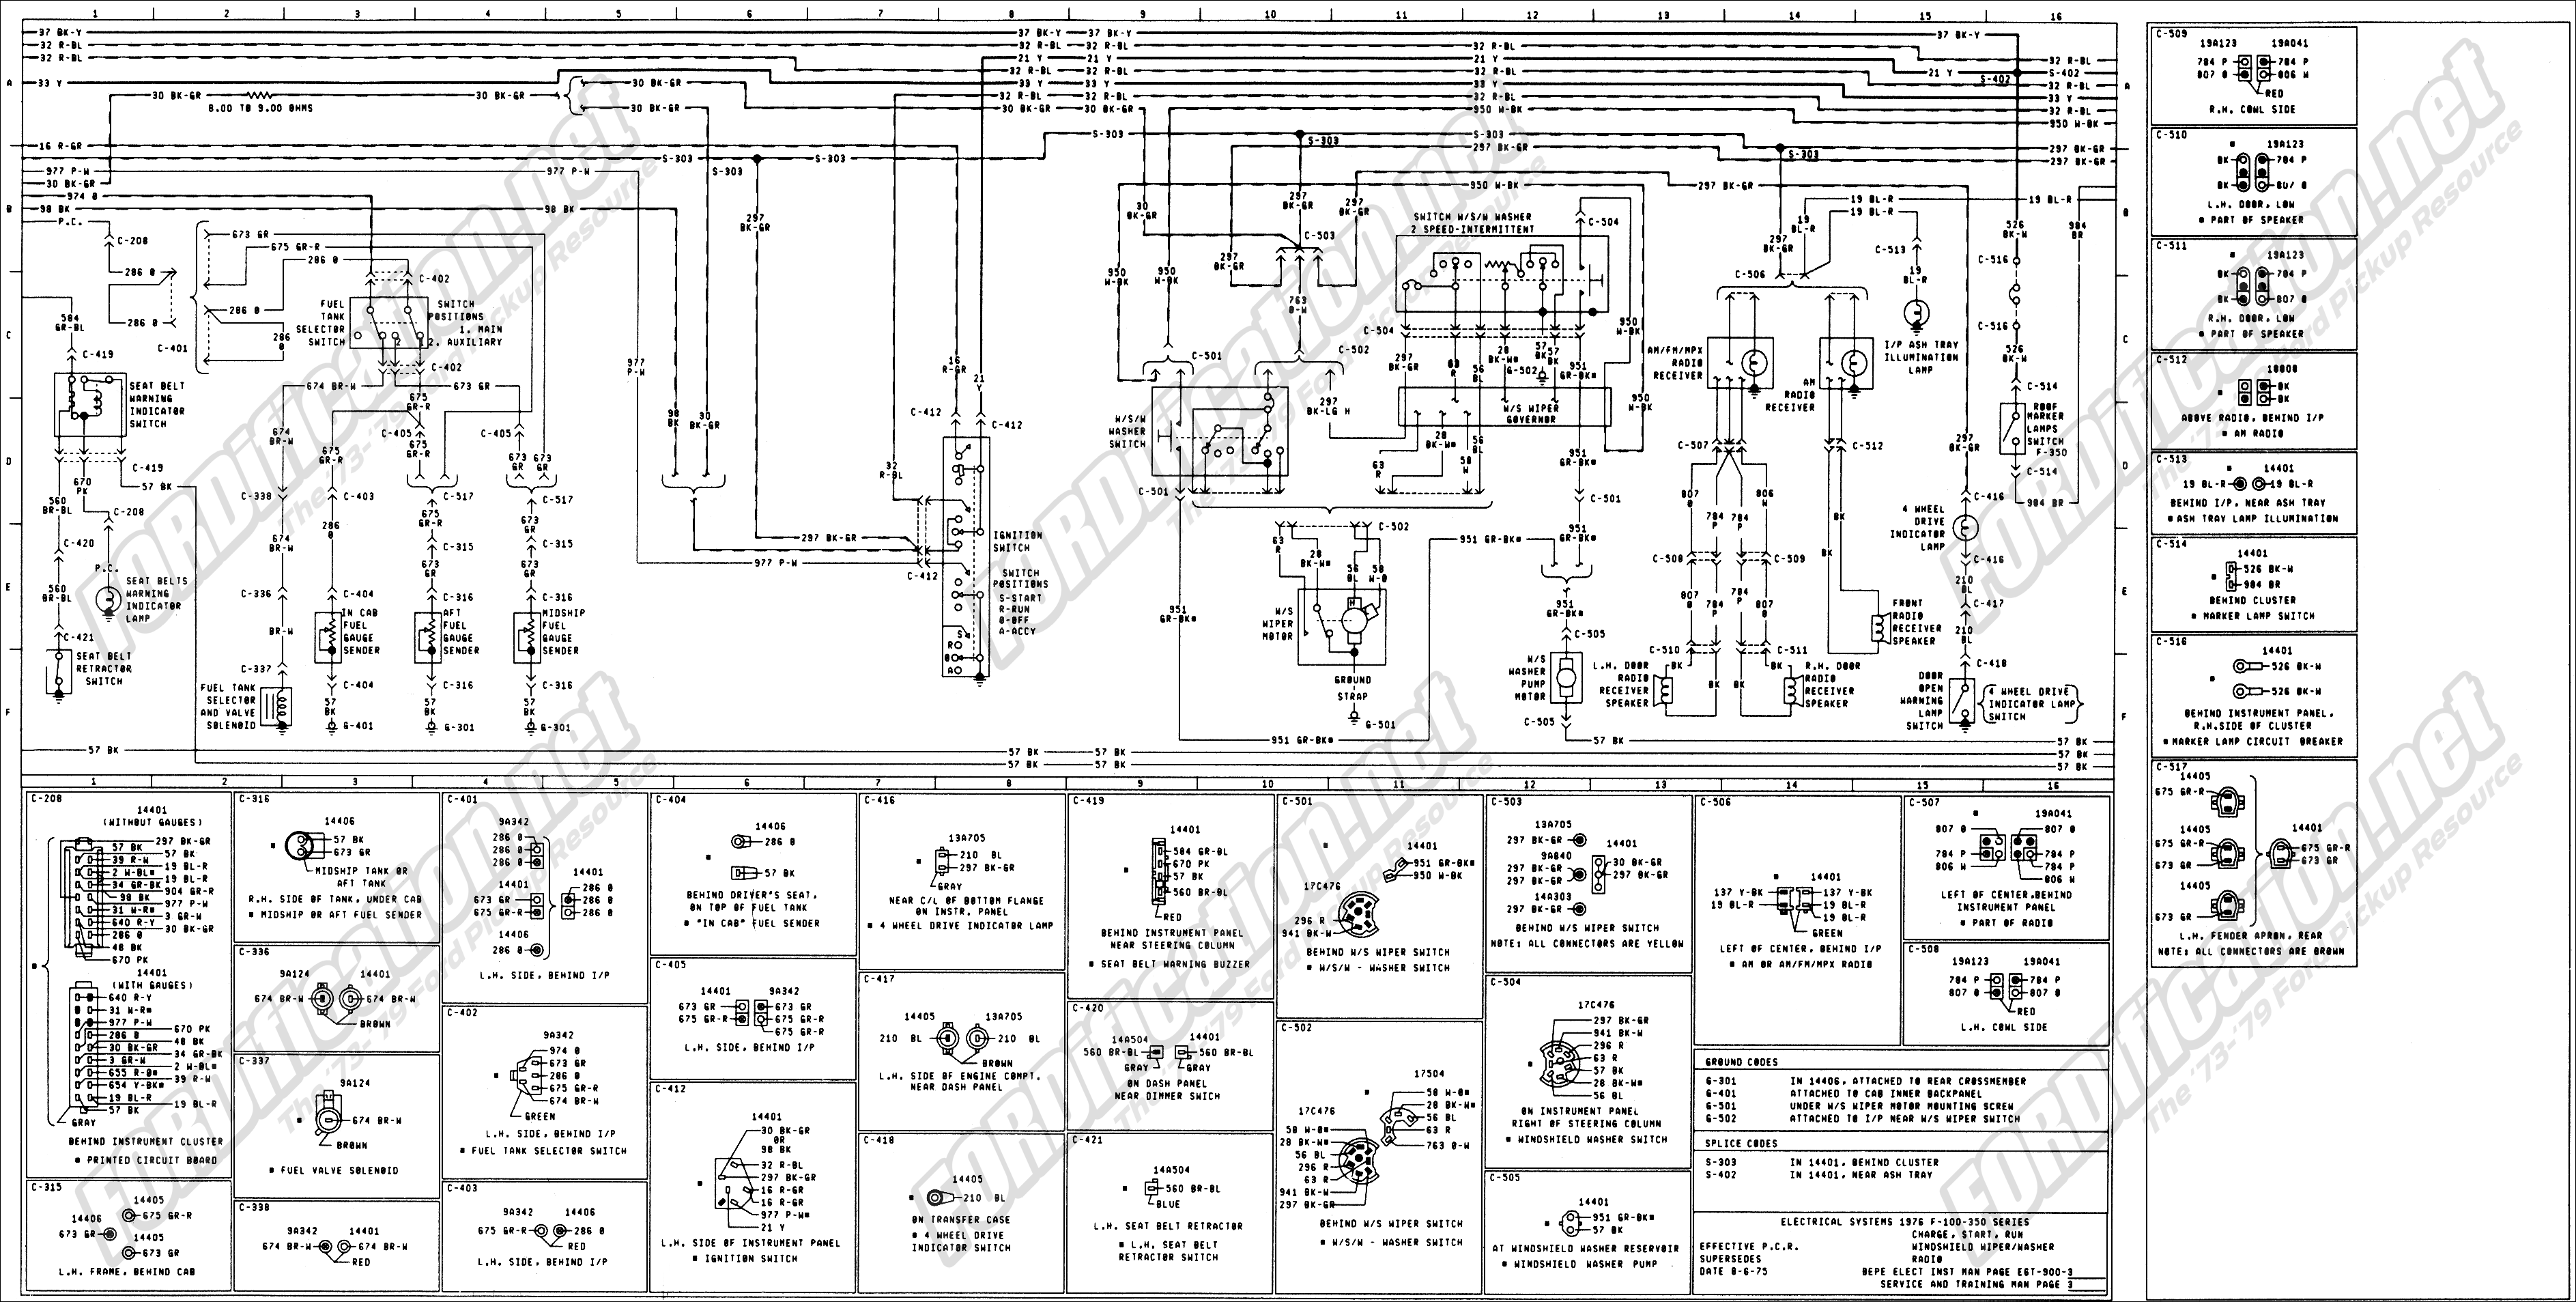 wiring_76master_3of9 1987 ford f 250 wiring diagram wiring diagram simonand 1979 ford f100 fuse box diagram at creativeand.co